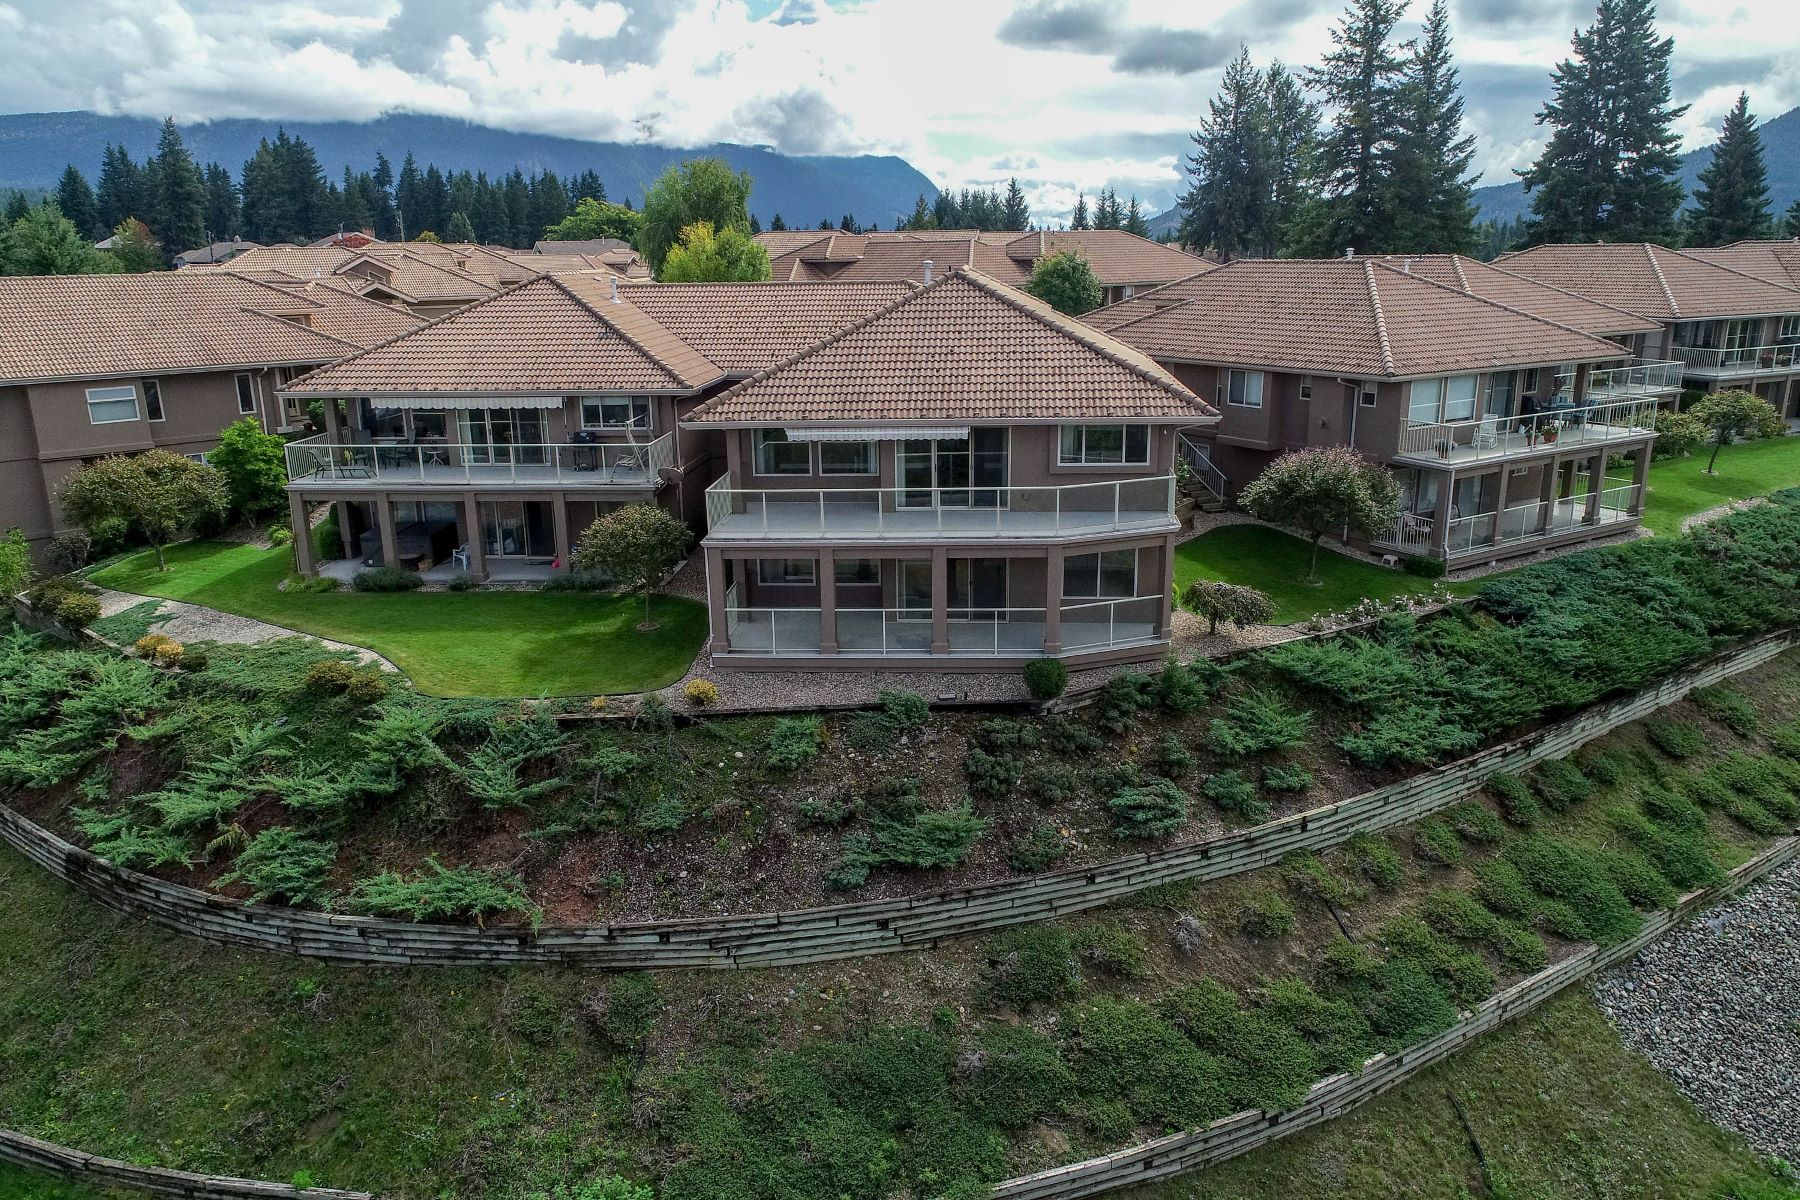 townhouses for Sale at Welcome to the Villas 17 2550 golf Course Dr. Blind Bay, British Columbia V0E 1H2 Canada